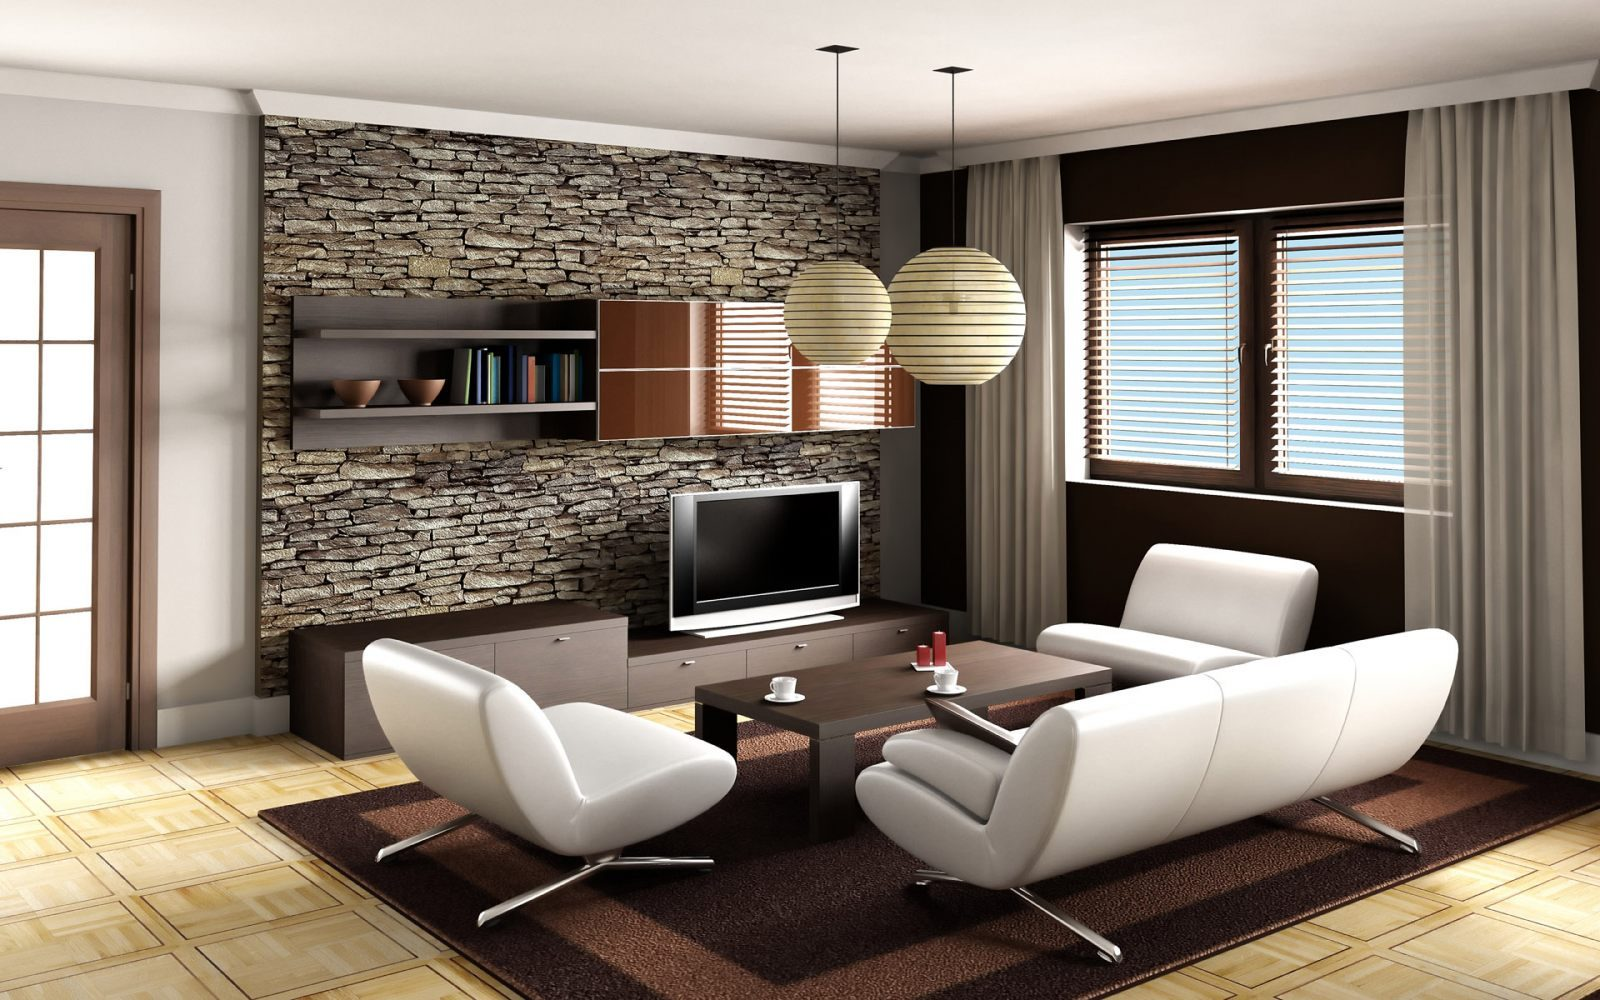 Ideas para decorar un sal n moderno im genes y fotos - Colores salones modernos ...